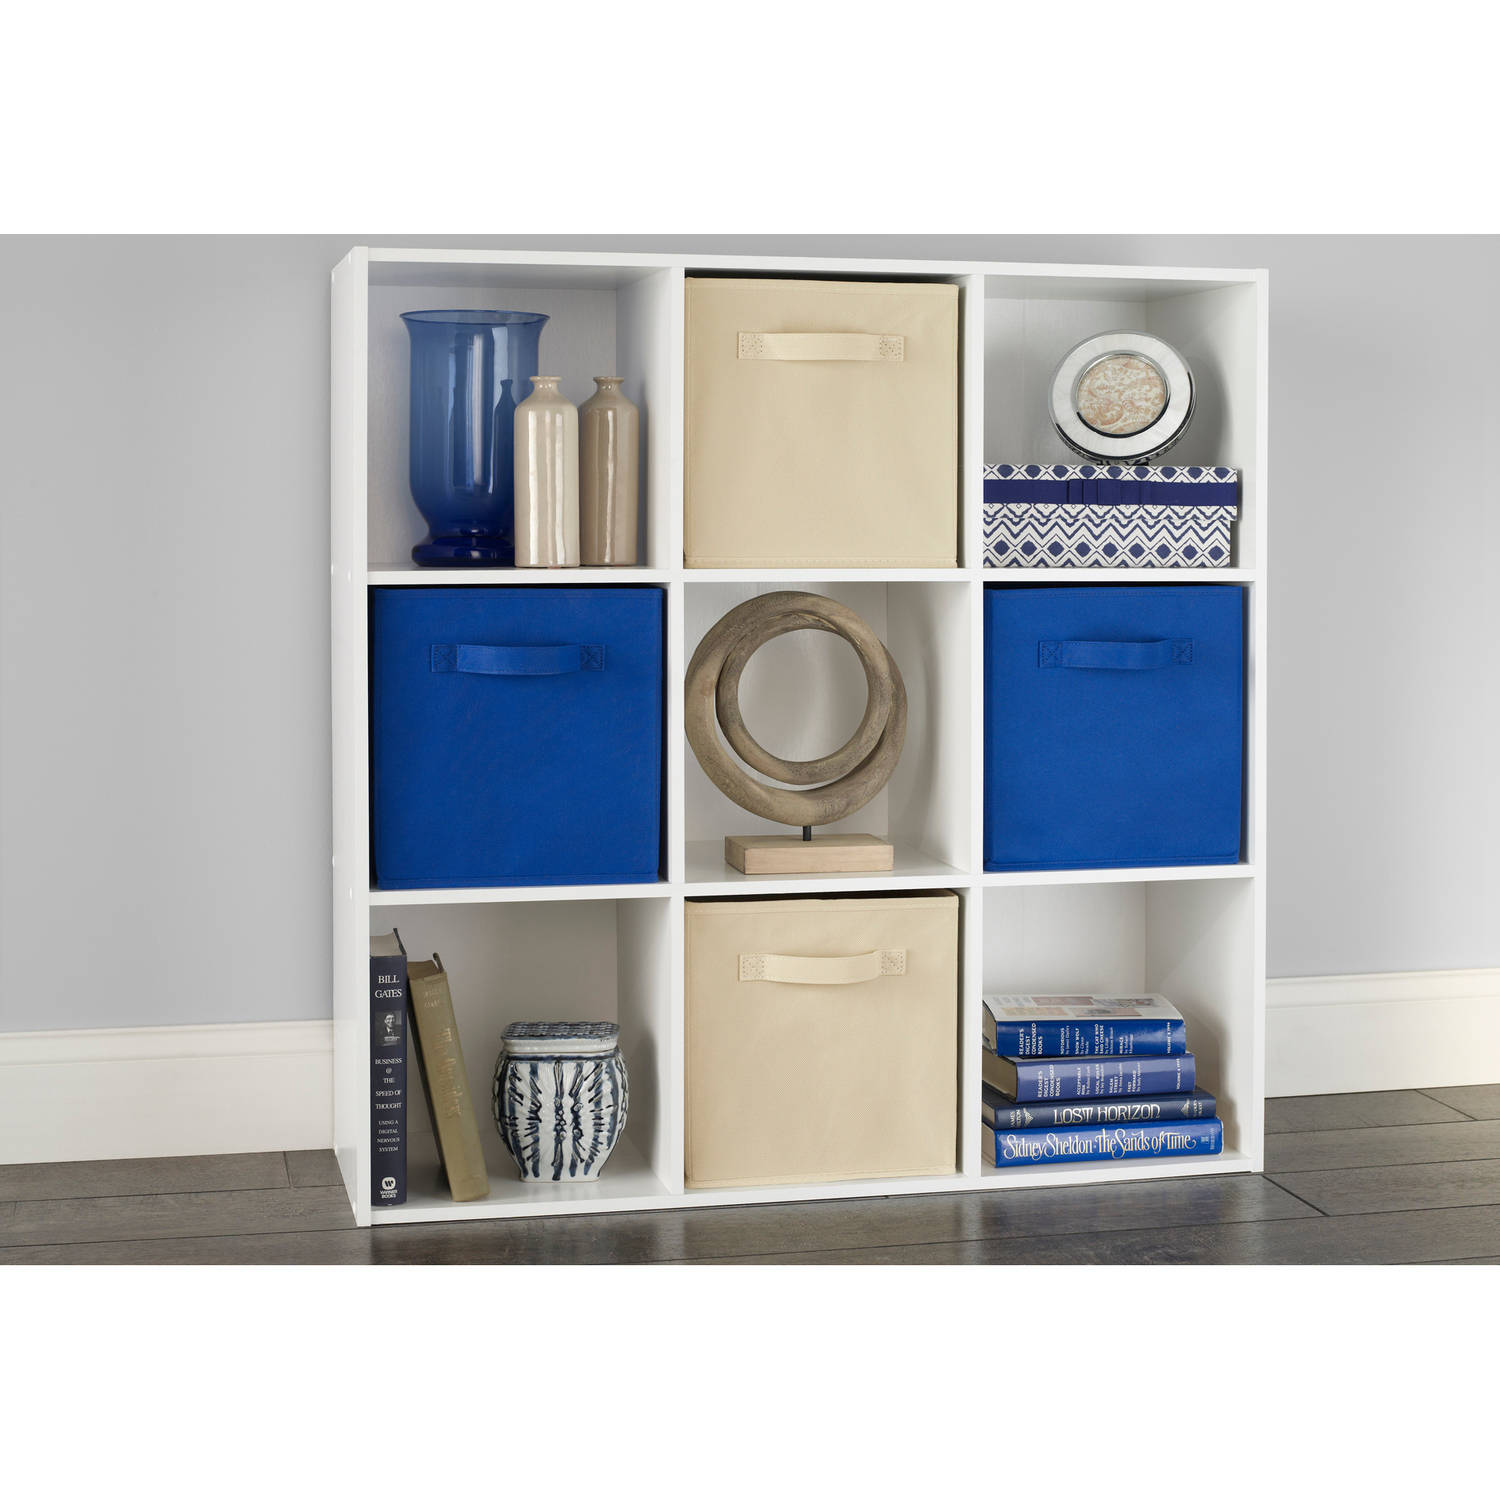 Beau ClosetMaid Cubeicals 9 Cube Organizer, White